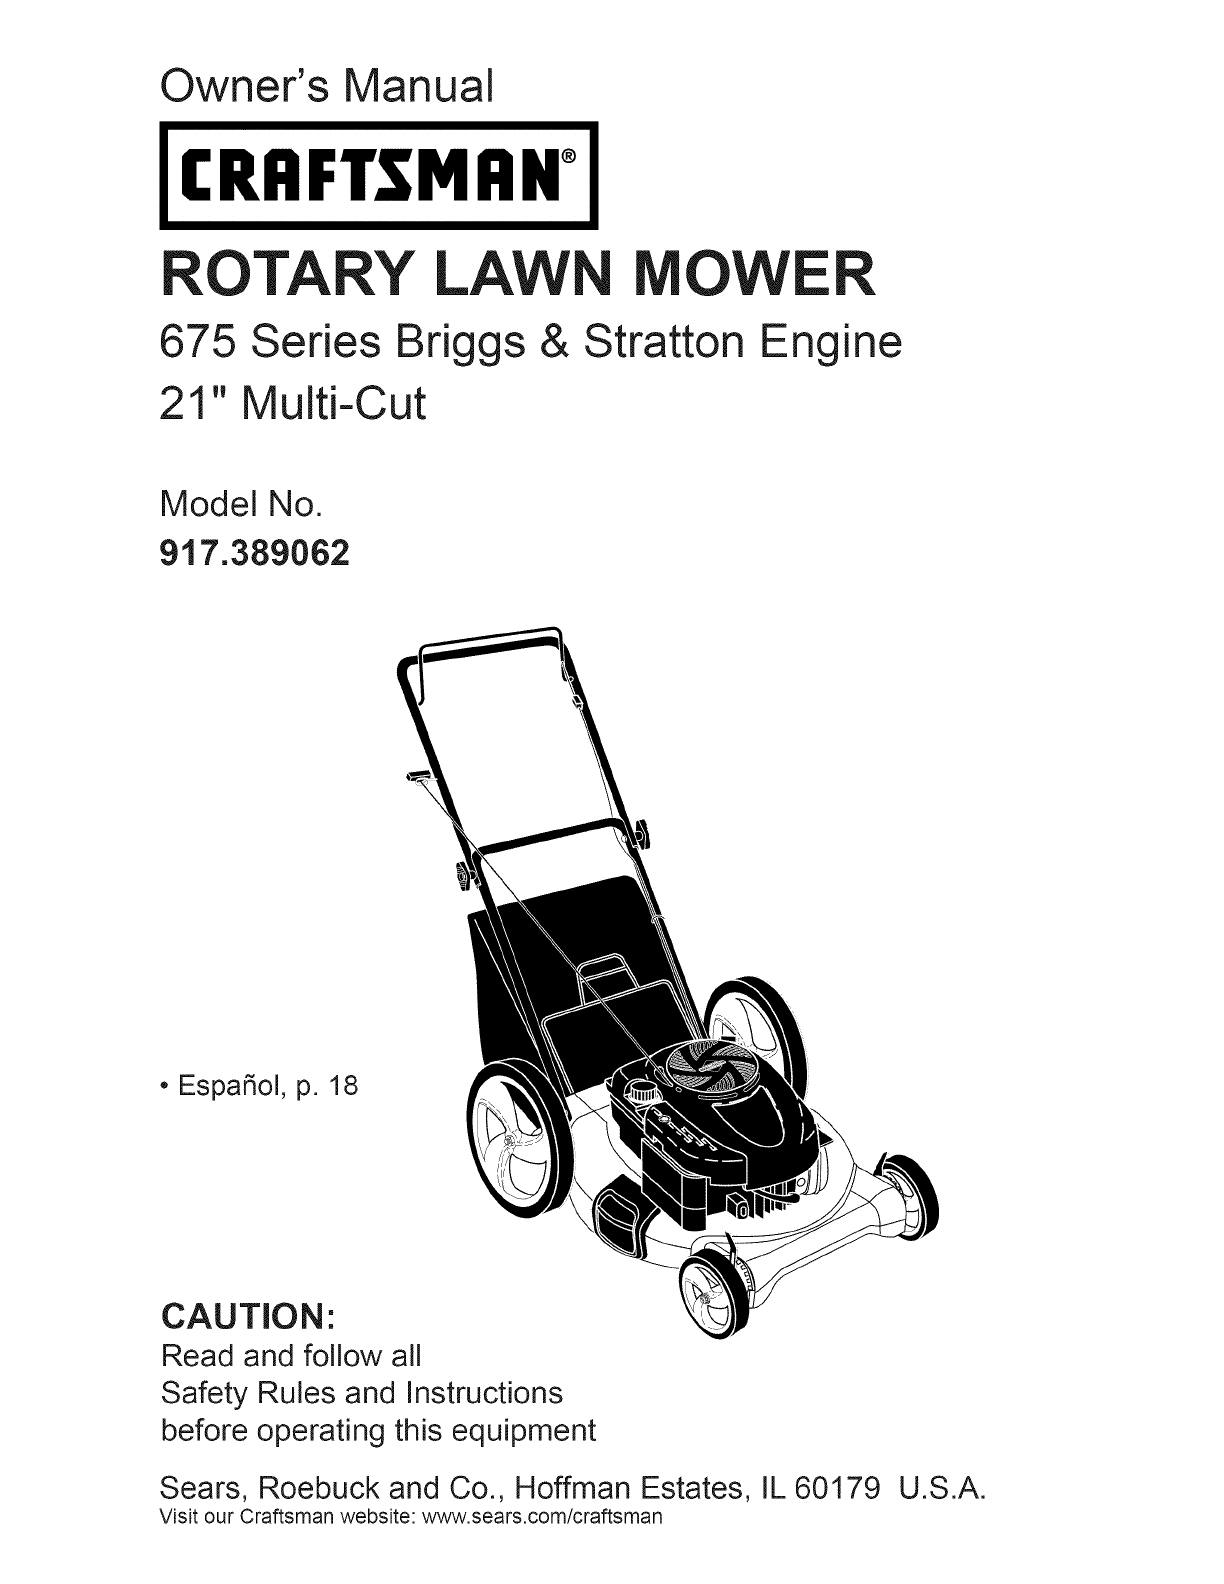 craftsman lawn mower 917 389062 user guide manualsonline com rh audio manualsonline com manual for craftsman lawn tractor model 944 manual for craftsman lawn tractor